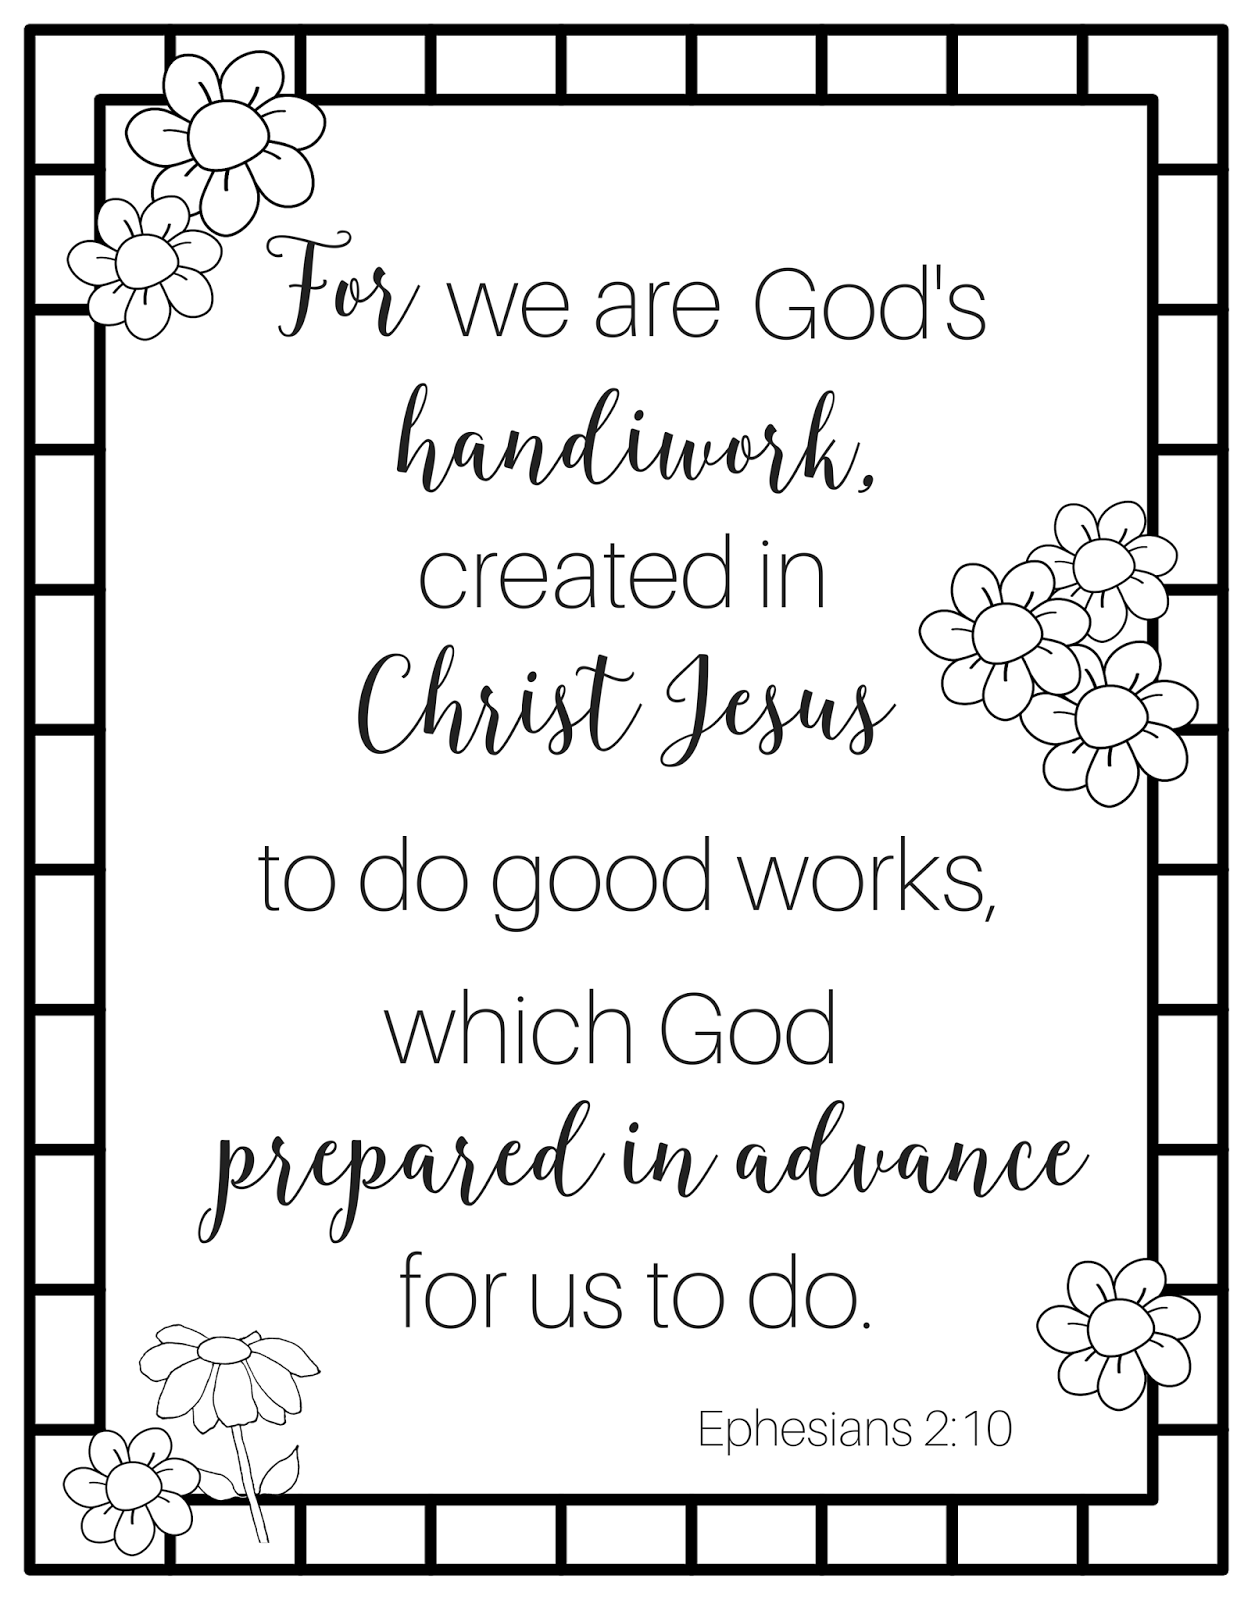 ephesians 2 8 coloring page god39s kingdom of grace ephesians 21 10 with maze ephesians page 8 coloring 2